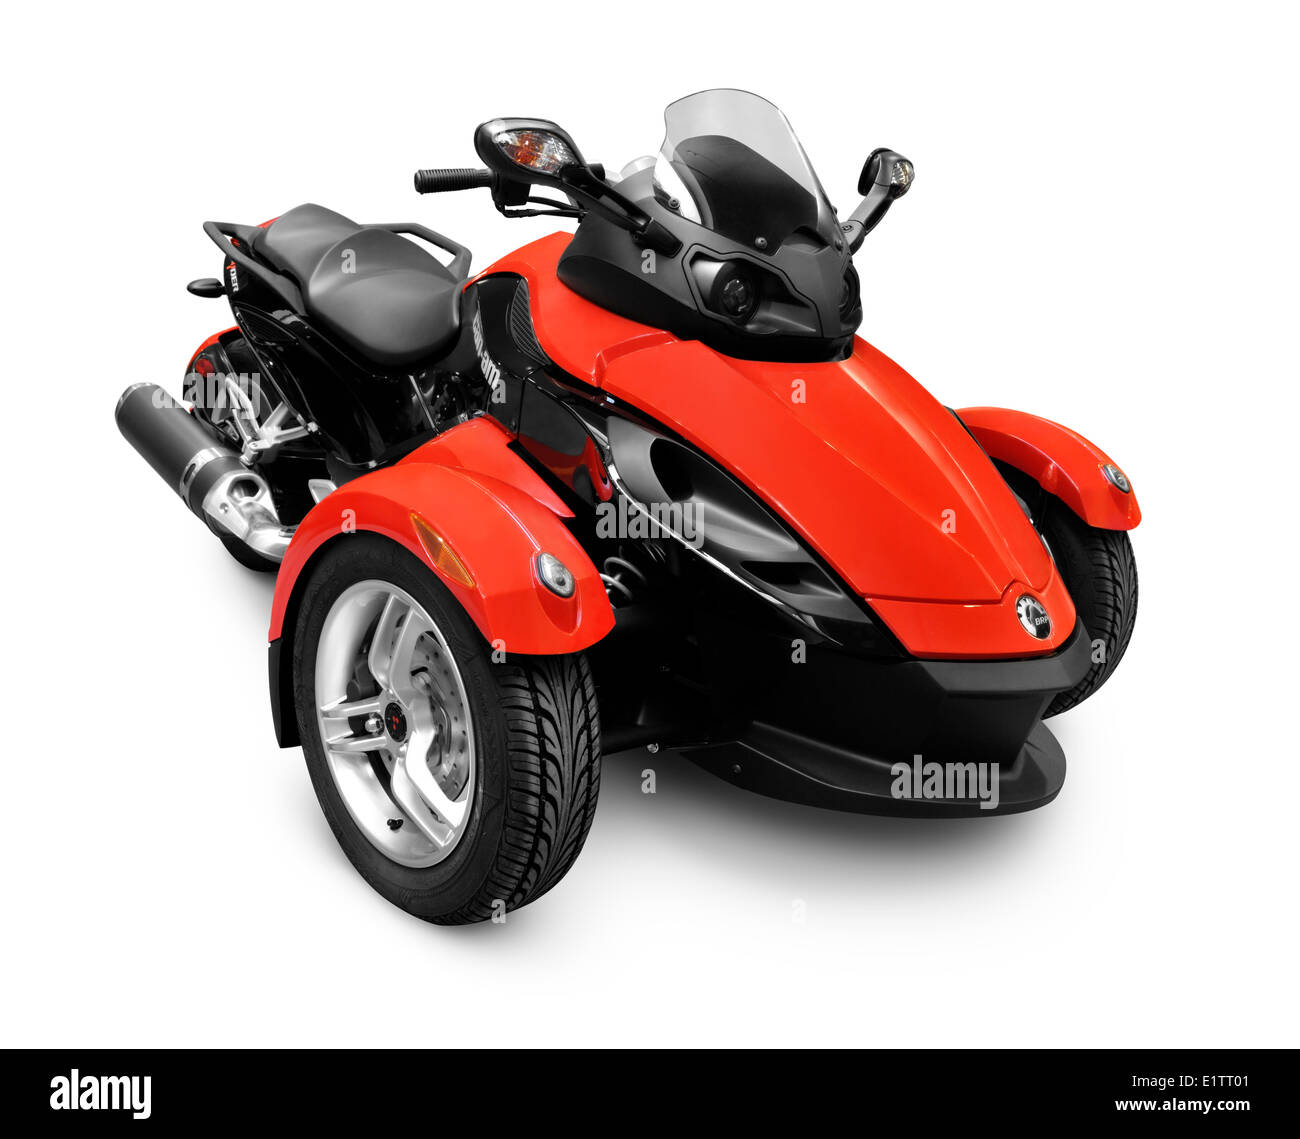 three 3 wheel motorcycle stock photos three 3 wheel motorcycle stock images alamy. Black Bedroom Furniture Sets. Home Design Ideas